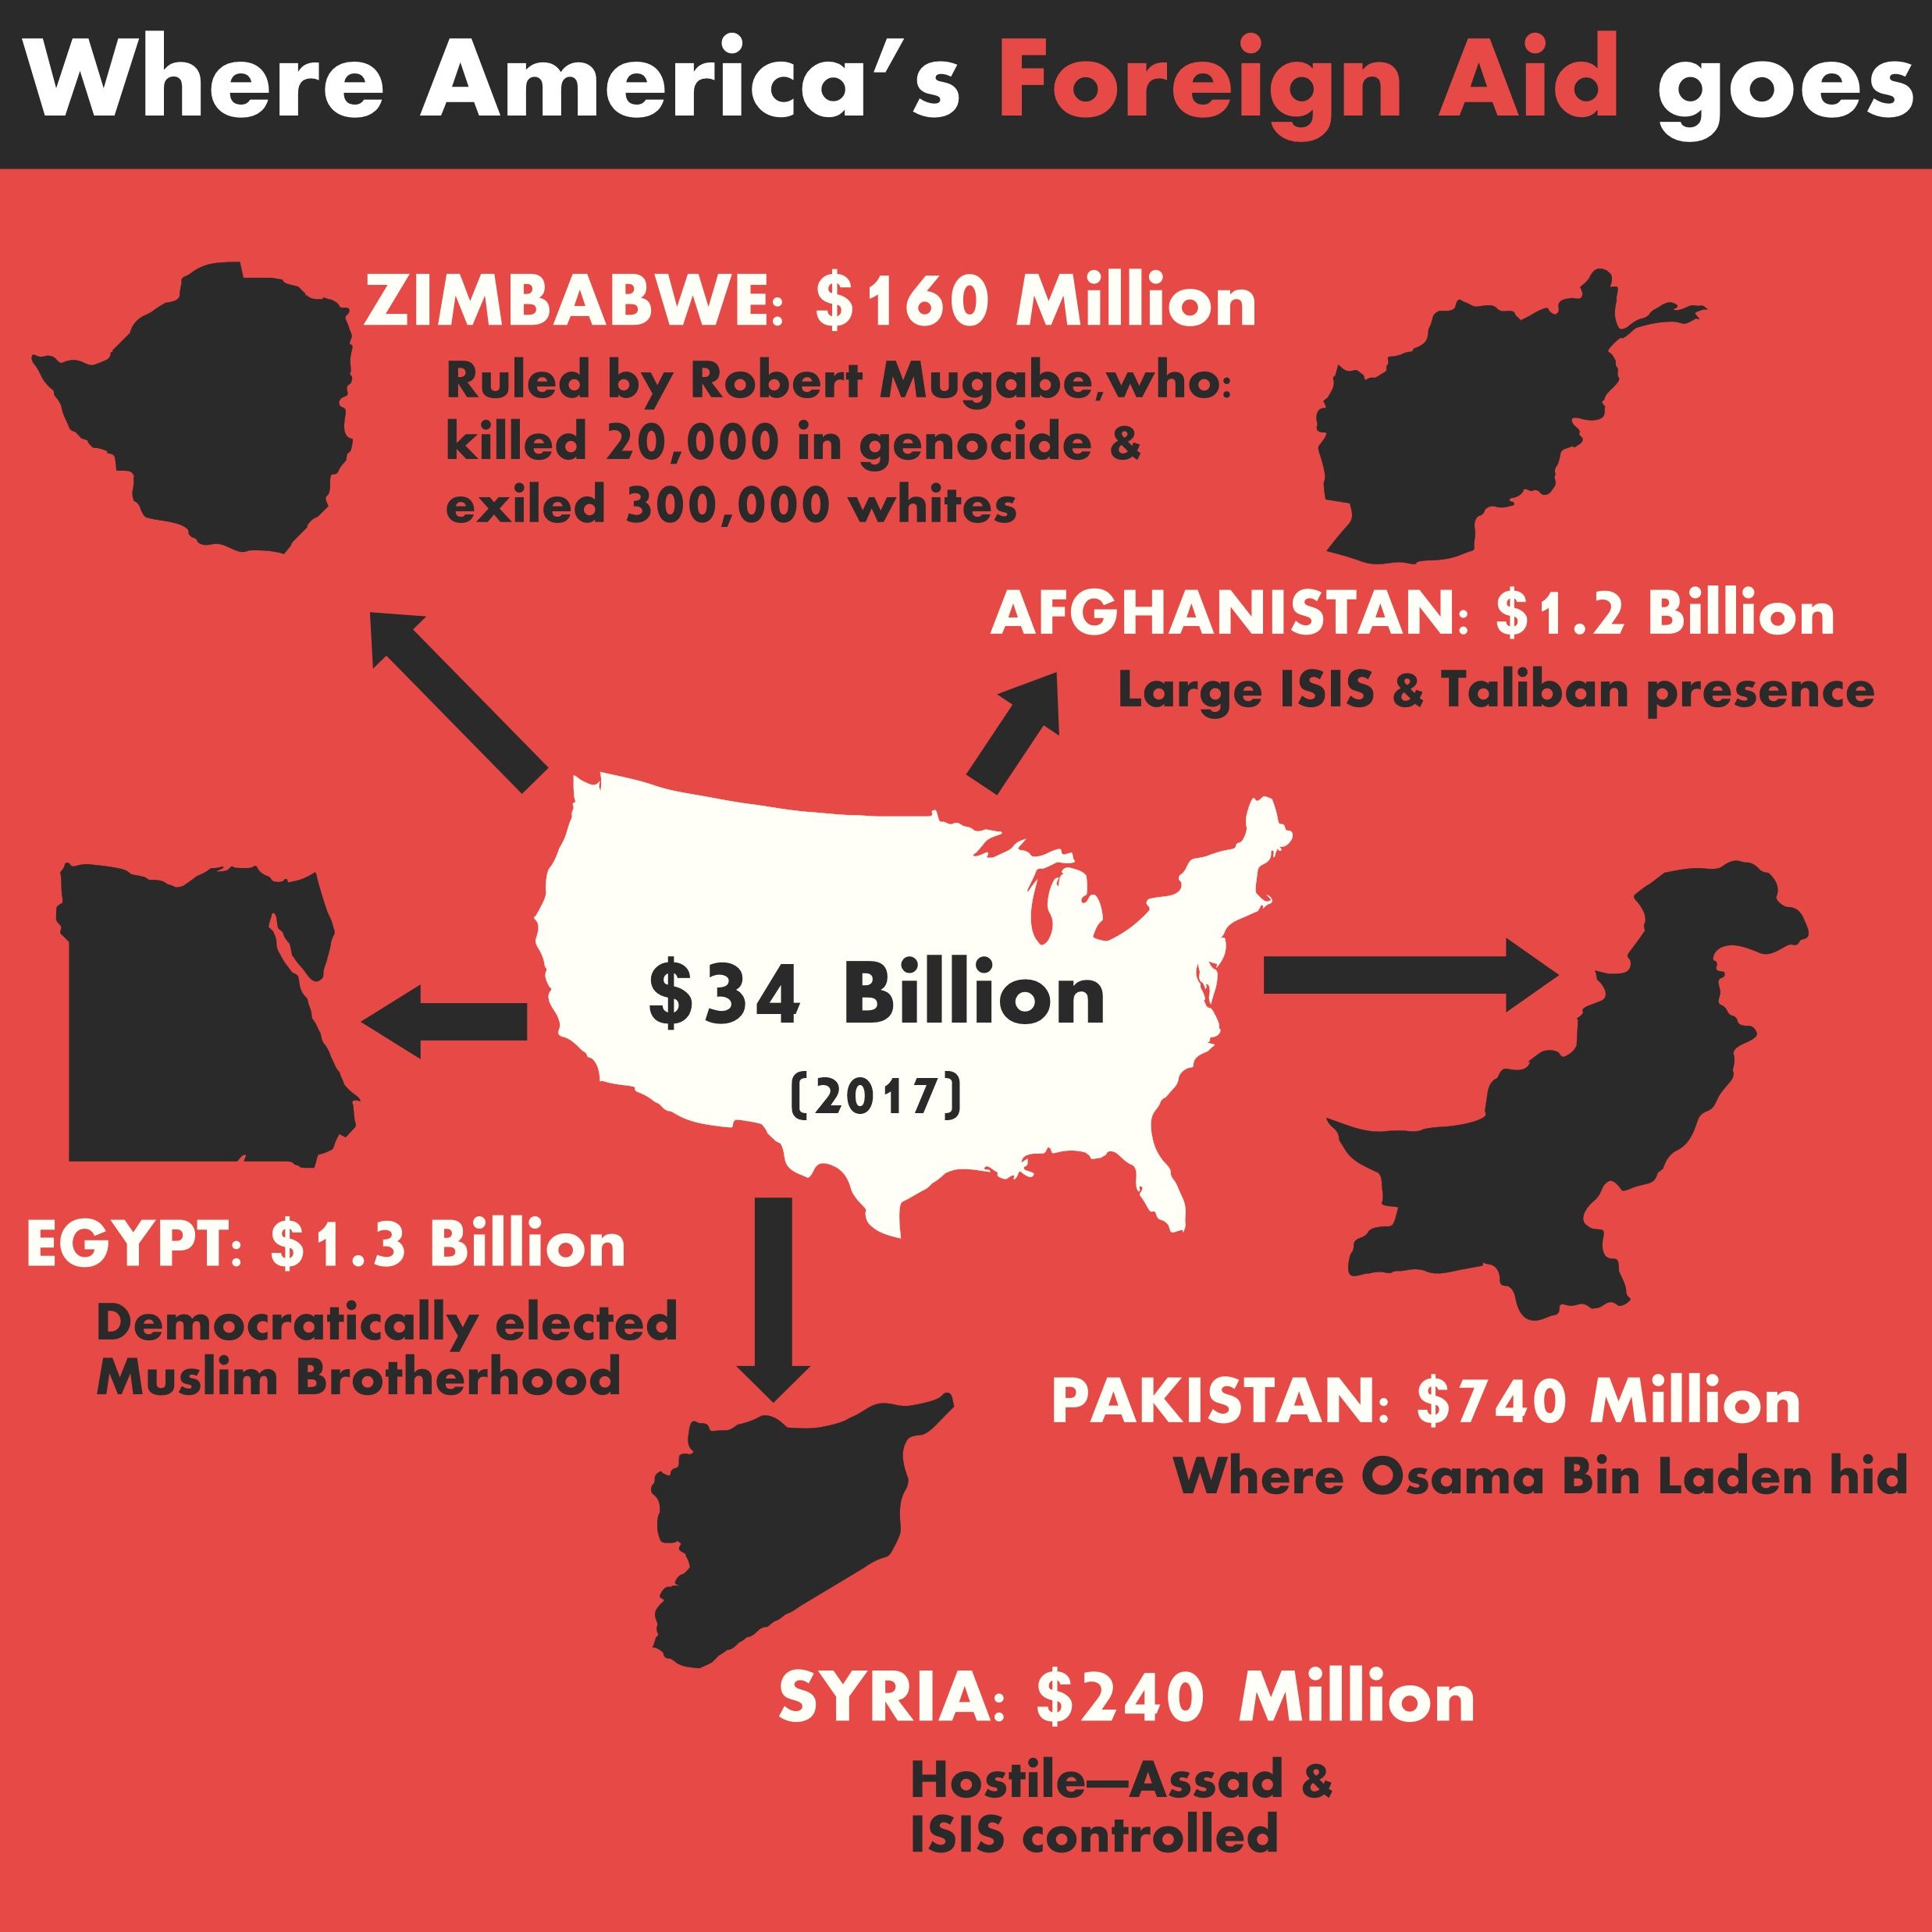 forign aid Foreign aid definition is - assistance (such as economic aid) provided by one nation to another assistance (such as economic aid) provided by one nation to another see the full definition.